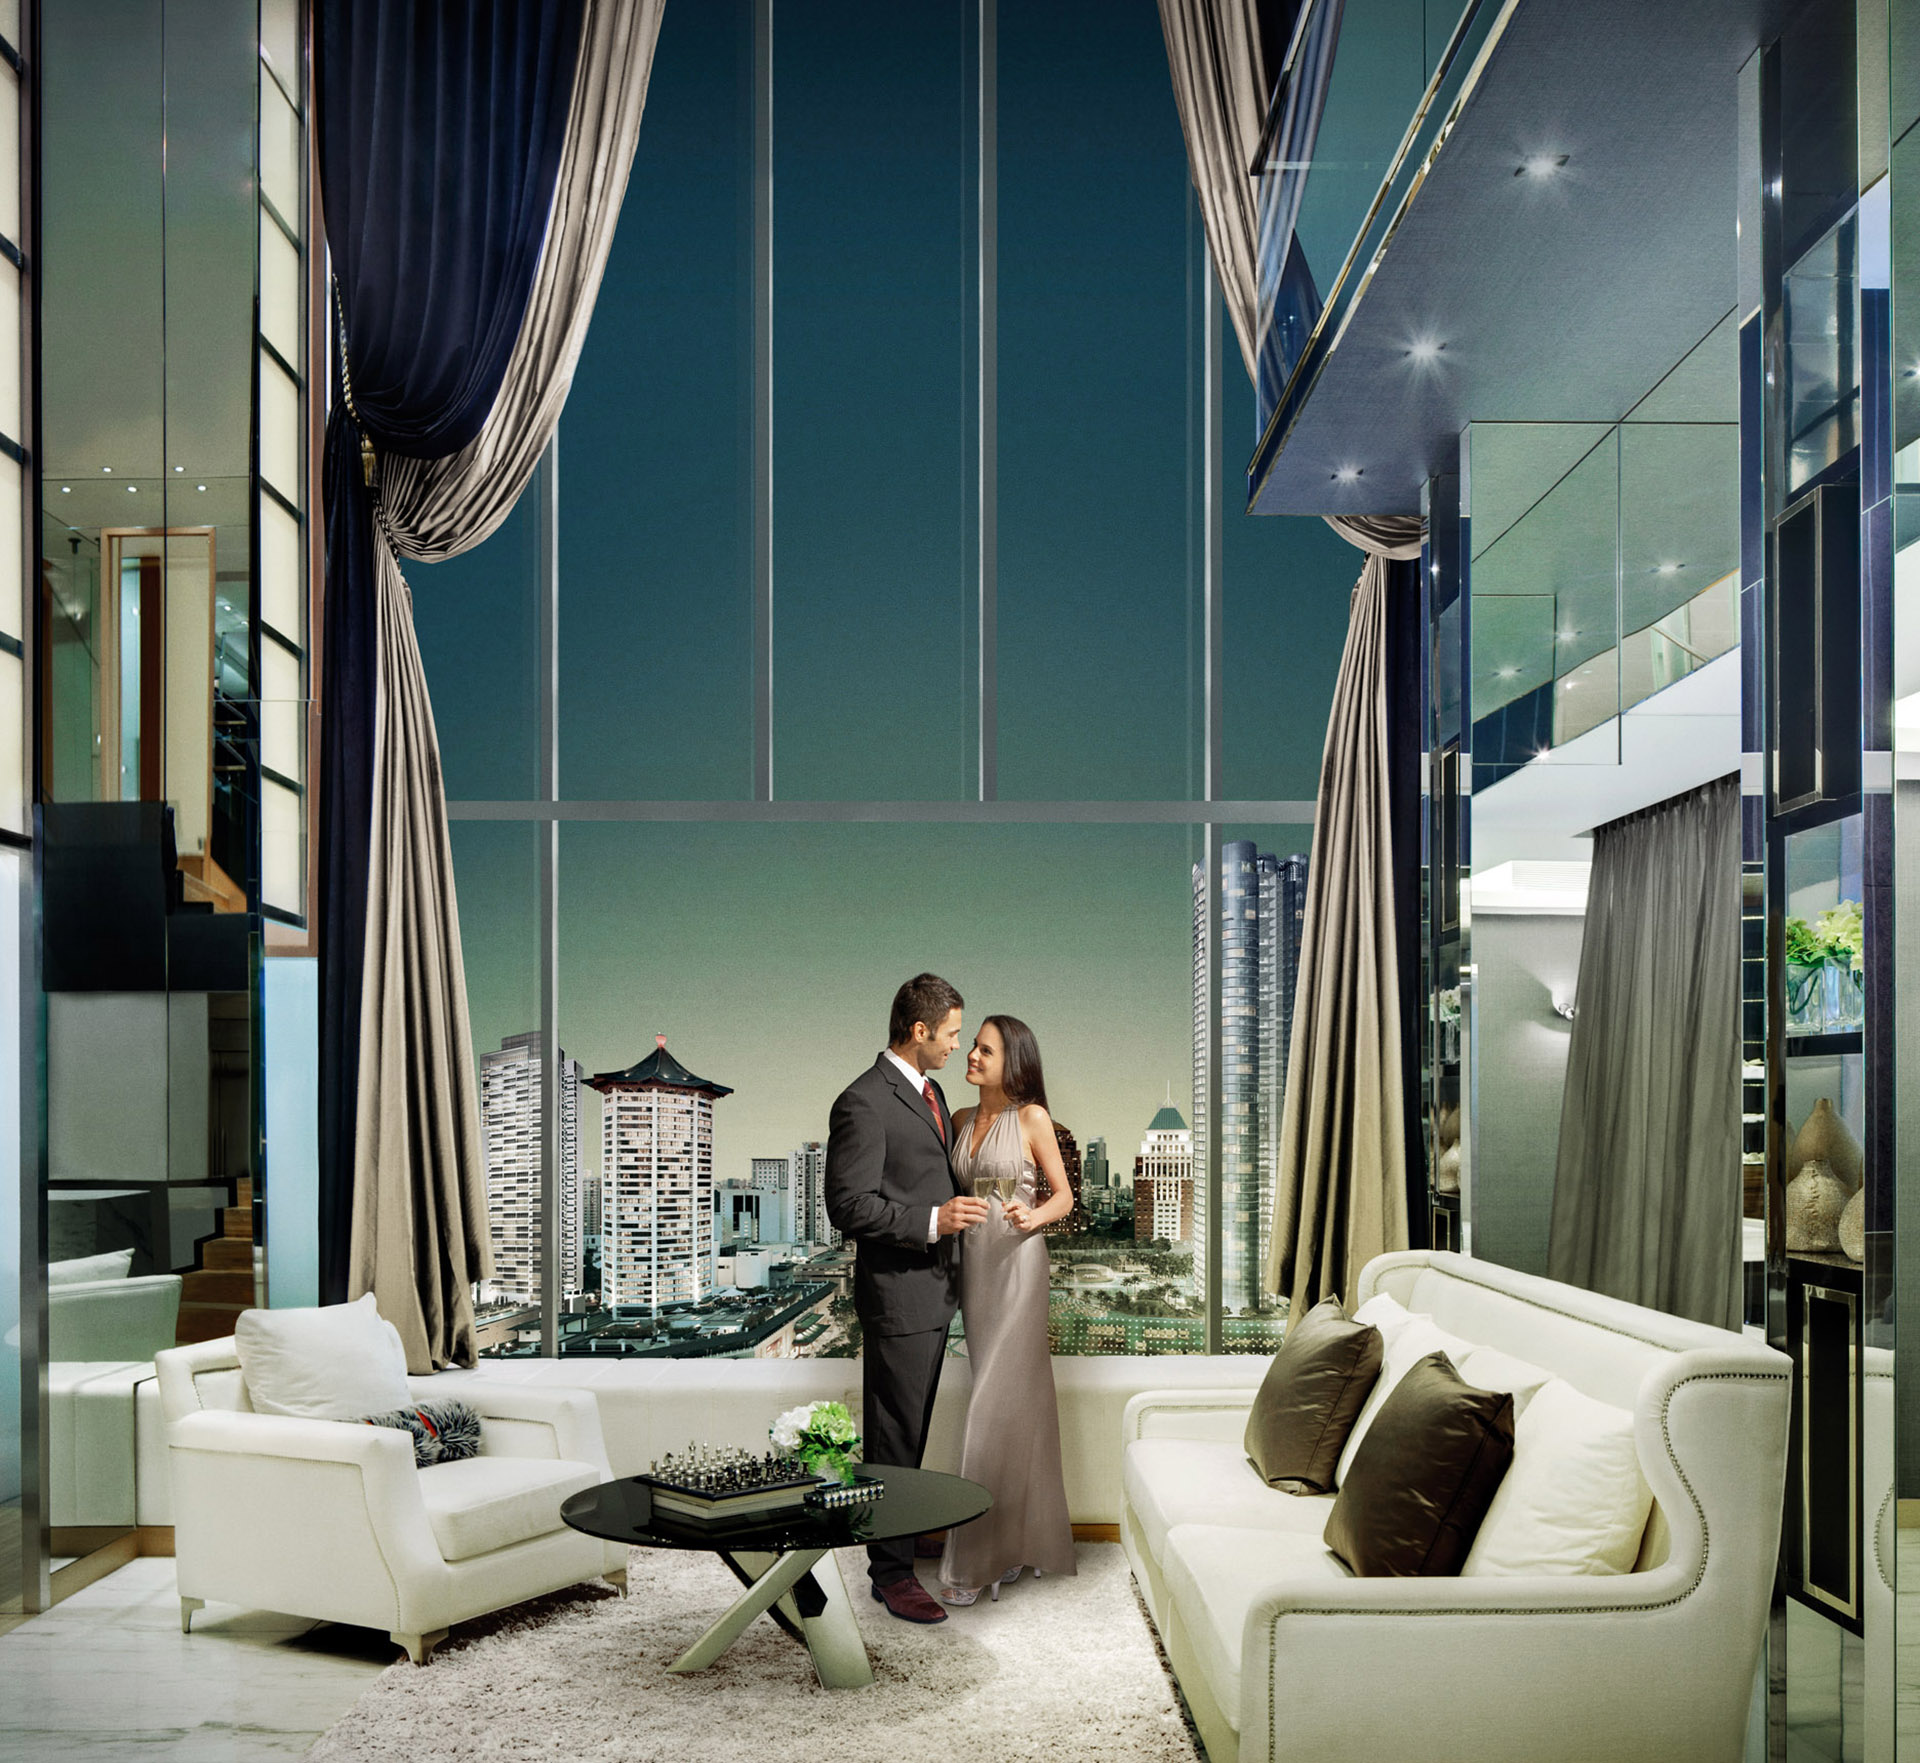 007 Skyline_LivingRoom_Couple_231012